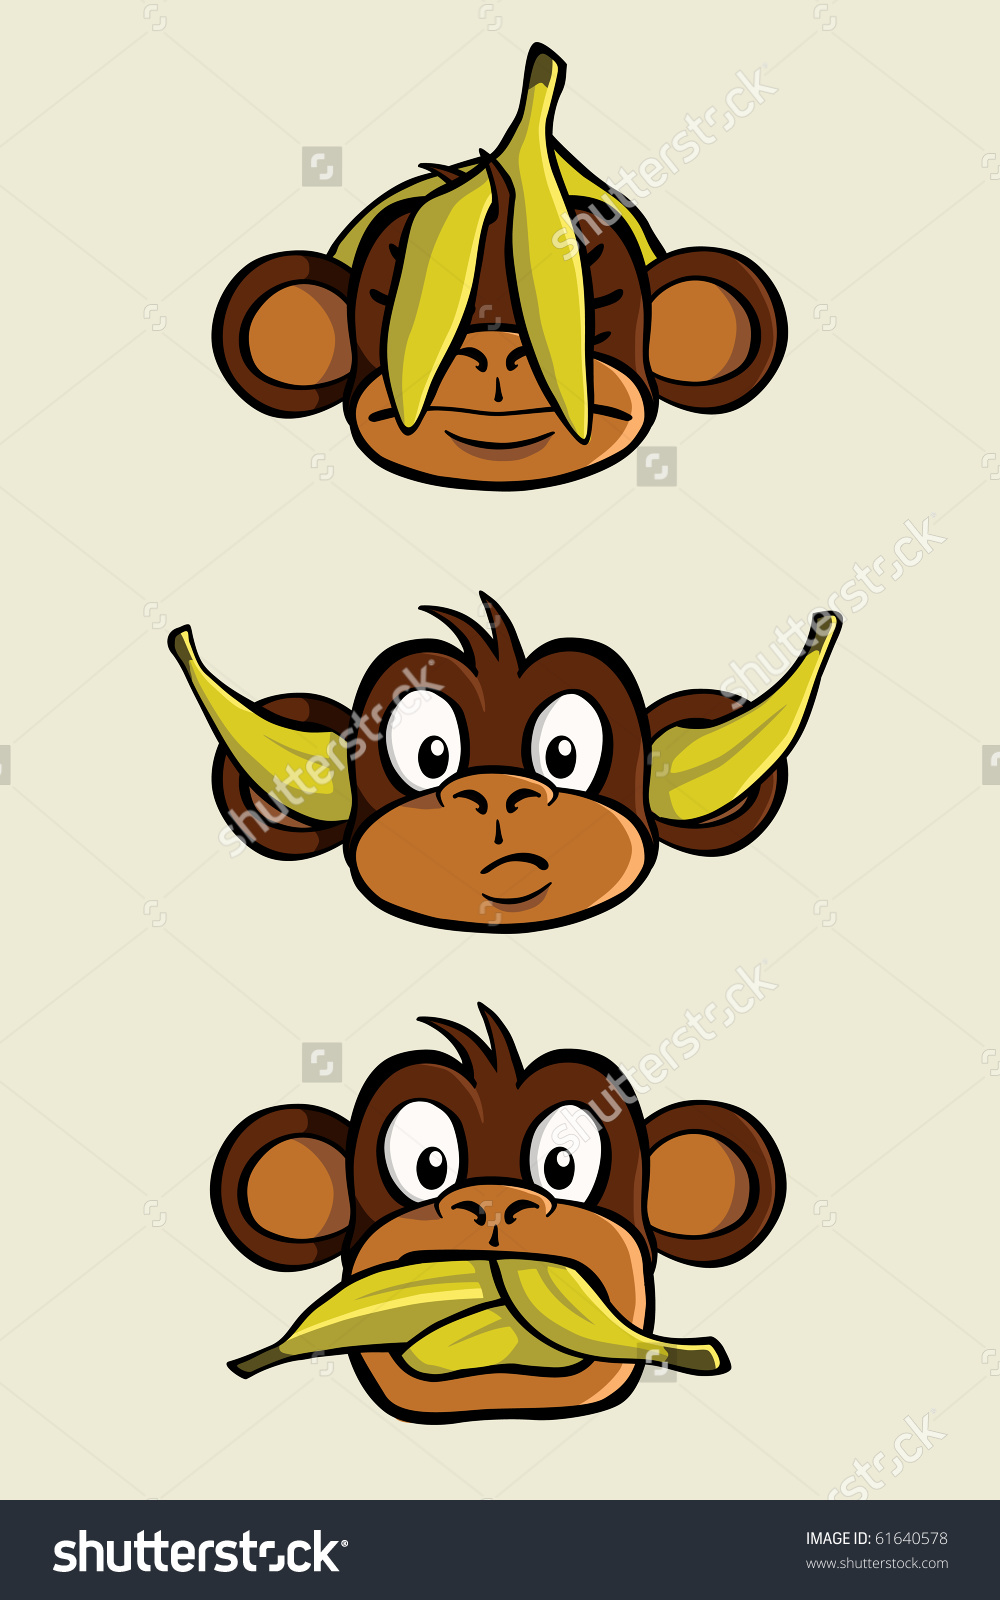 Three Wise Monkeys Depicting See No Stock Vector 61640578.